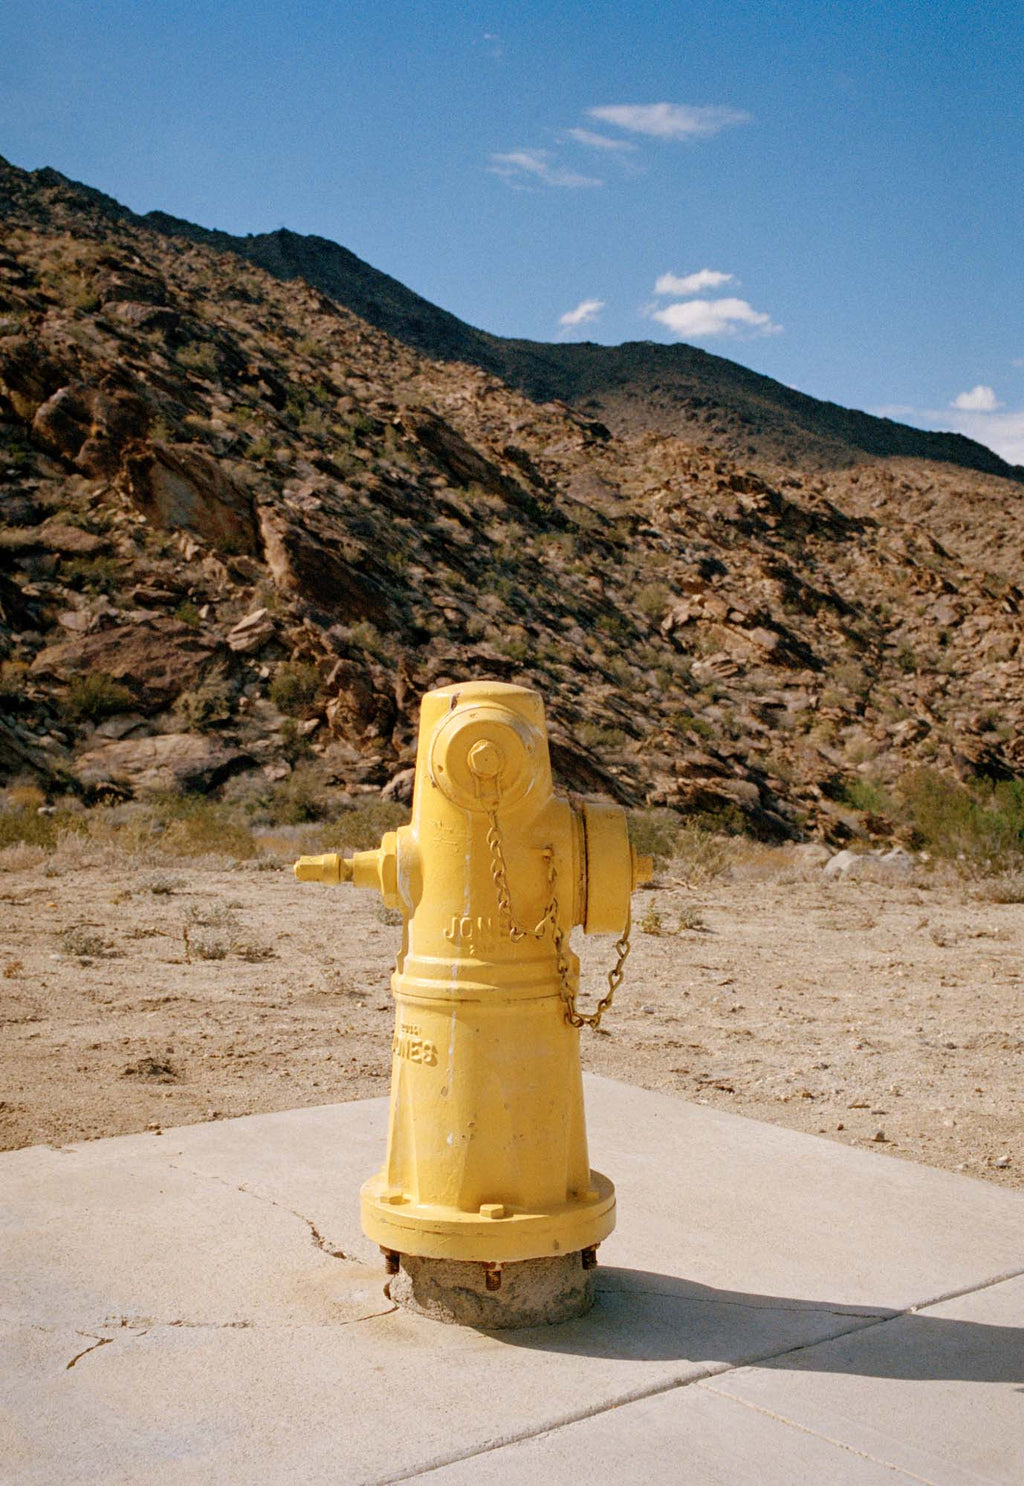 A photography of a yellow fire hydrant sitting in the desert,Retro, mid century, Artwork, Prints wall art California Photographic prints Ocean Palm Springs Framed artwork, Photography,  Film photography, Vintage photo style,  Interior design, , Buy Art, photography art, buy art, Prints for sale, art prints, colour photography, surfing, surfboard, Palm Springs, sun, reset, mountains,